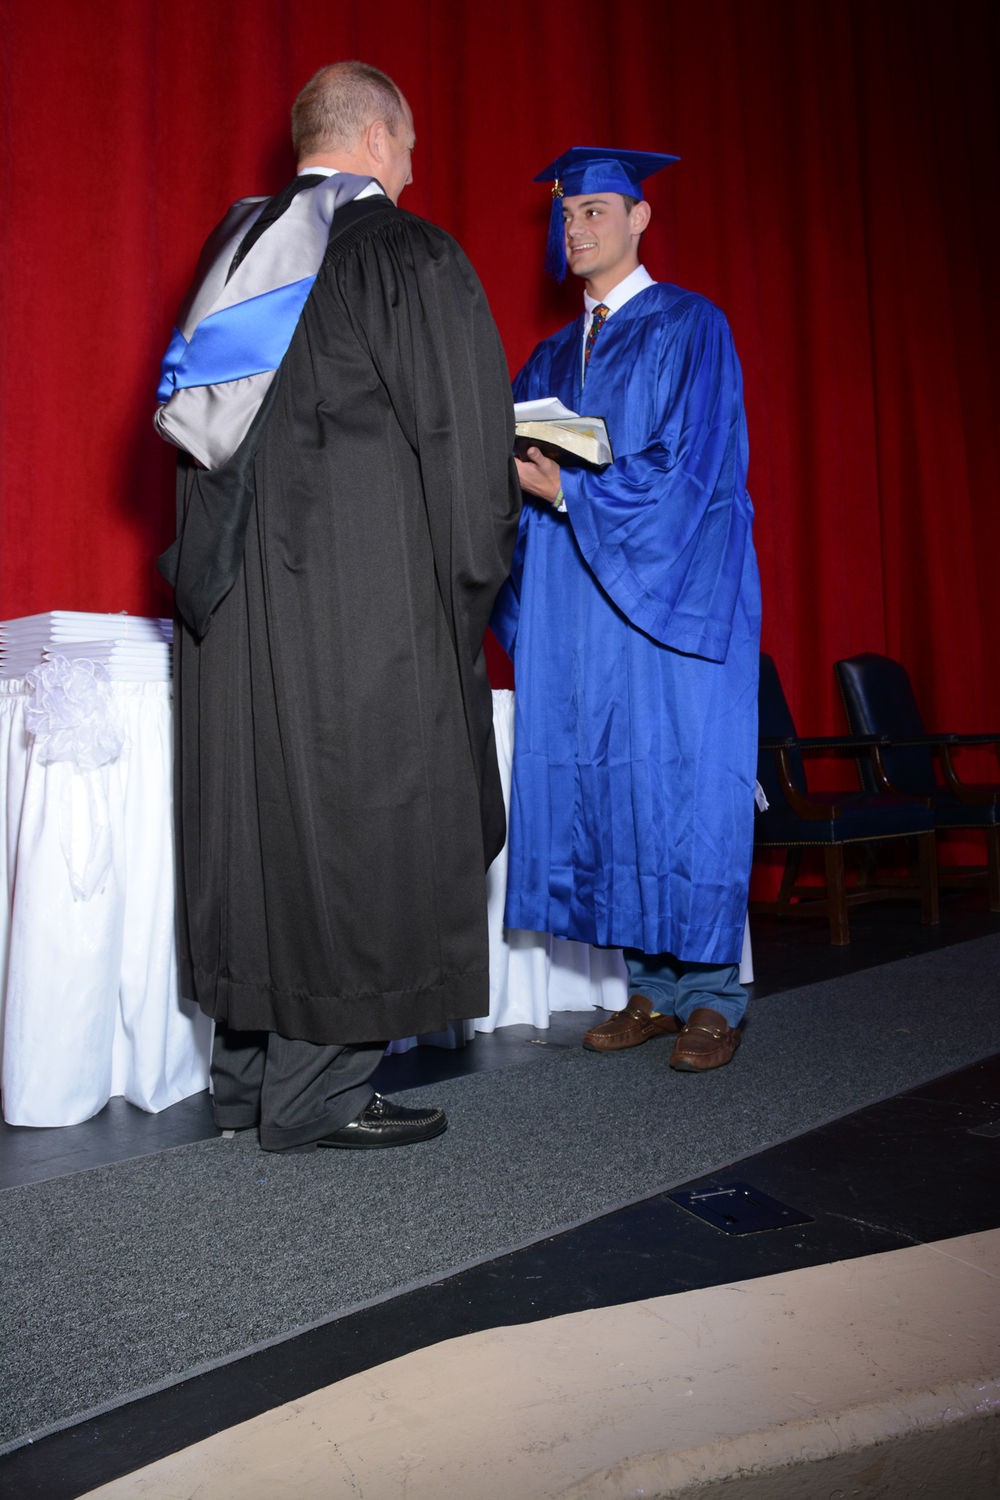 May16 GraduationPhotos135.jpg